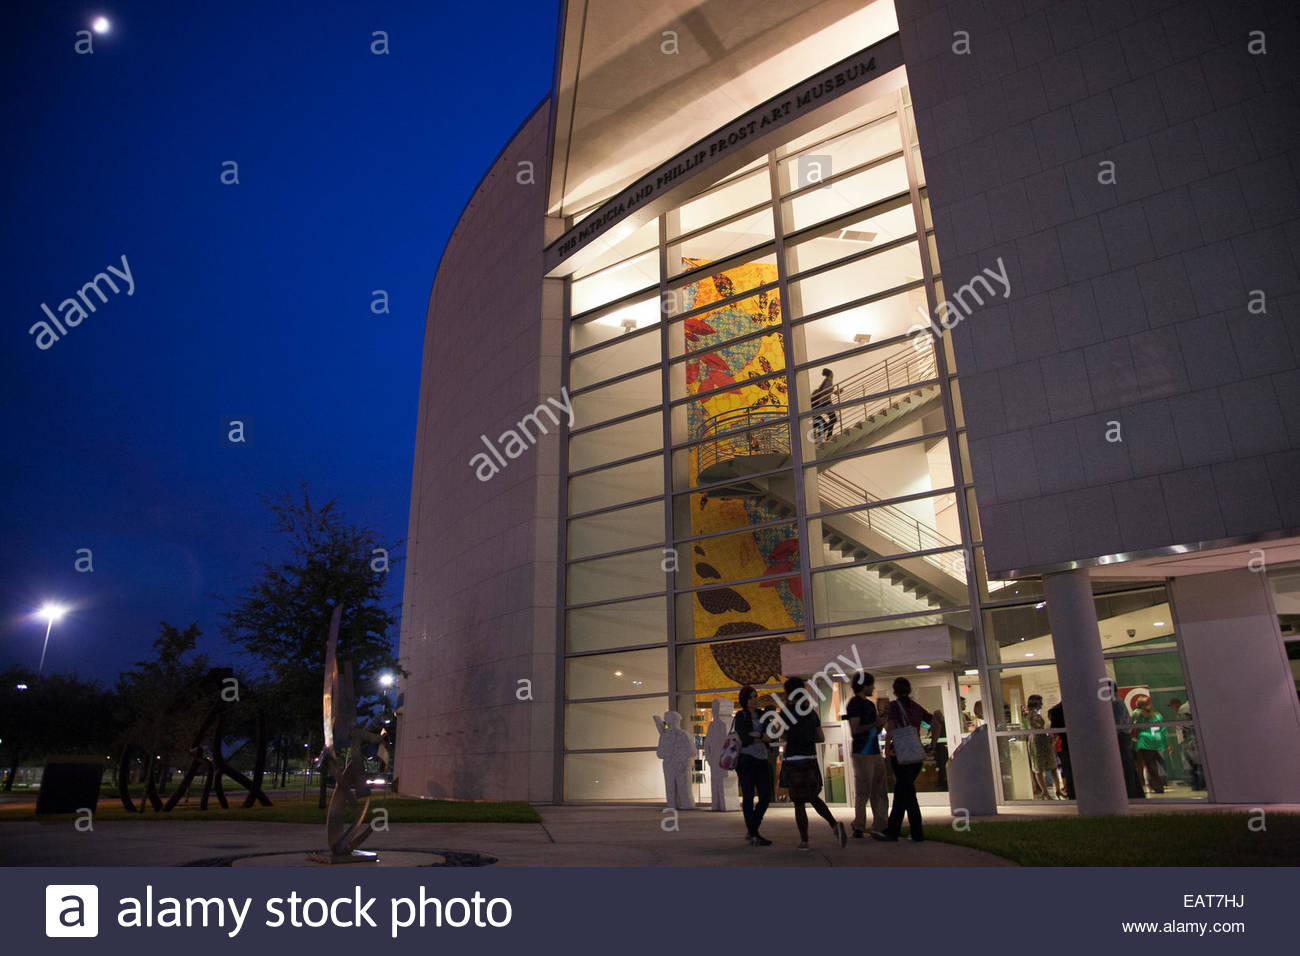 The recognizable glass atrium entrance marks the Frost Art Museum. - Stock Image